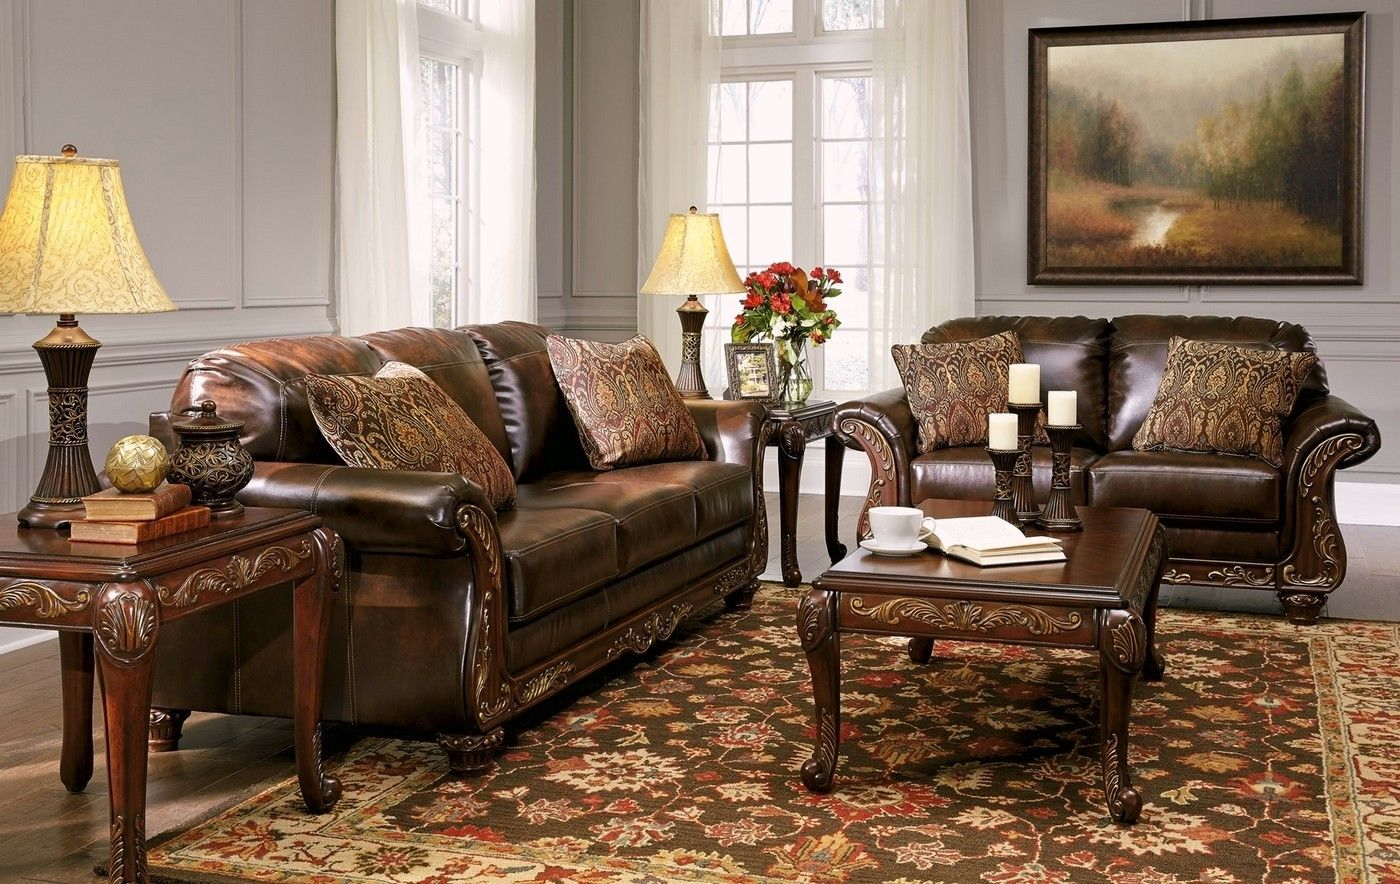 Vanceton brown leather traditional wood sofa loveseat for Wooden chairs for living room